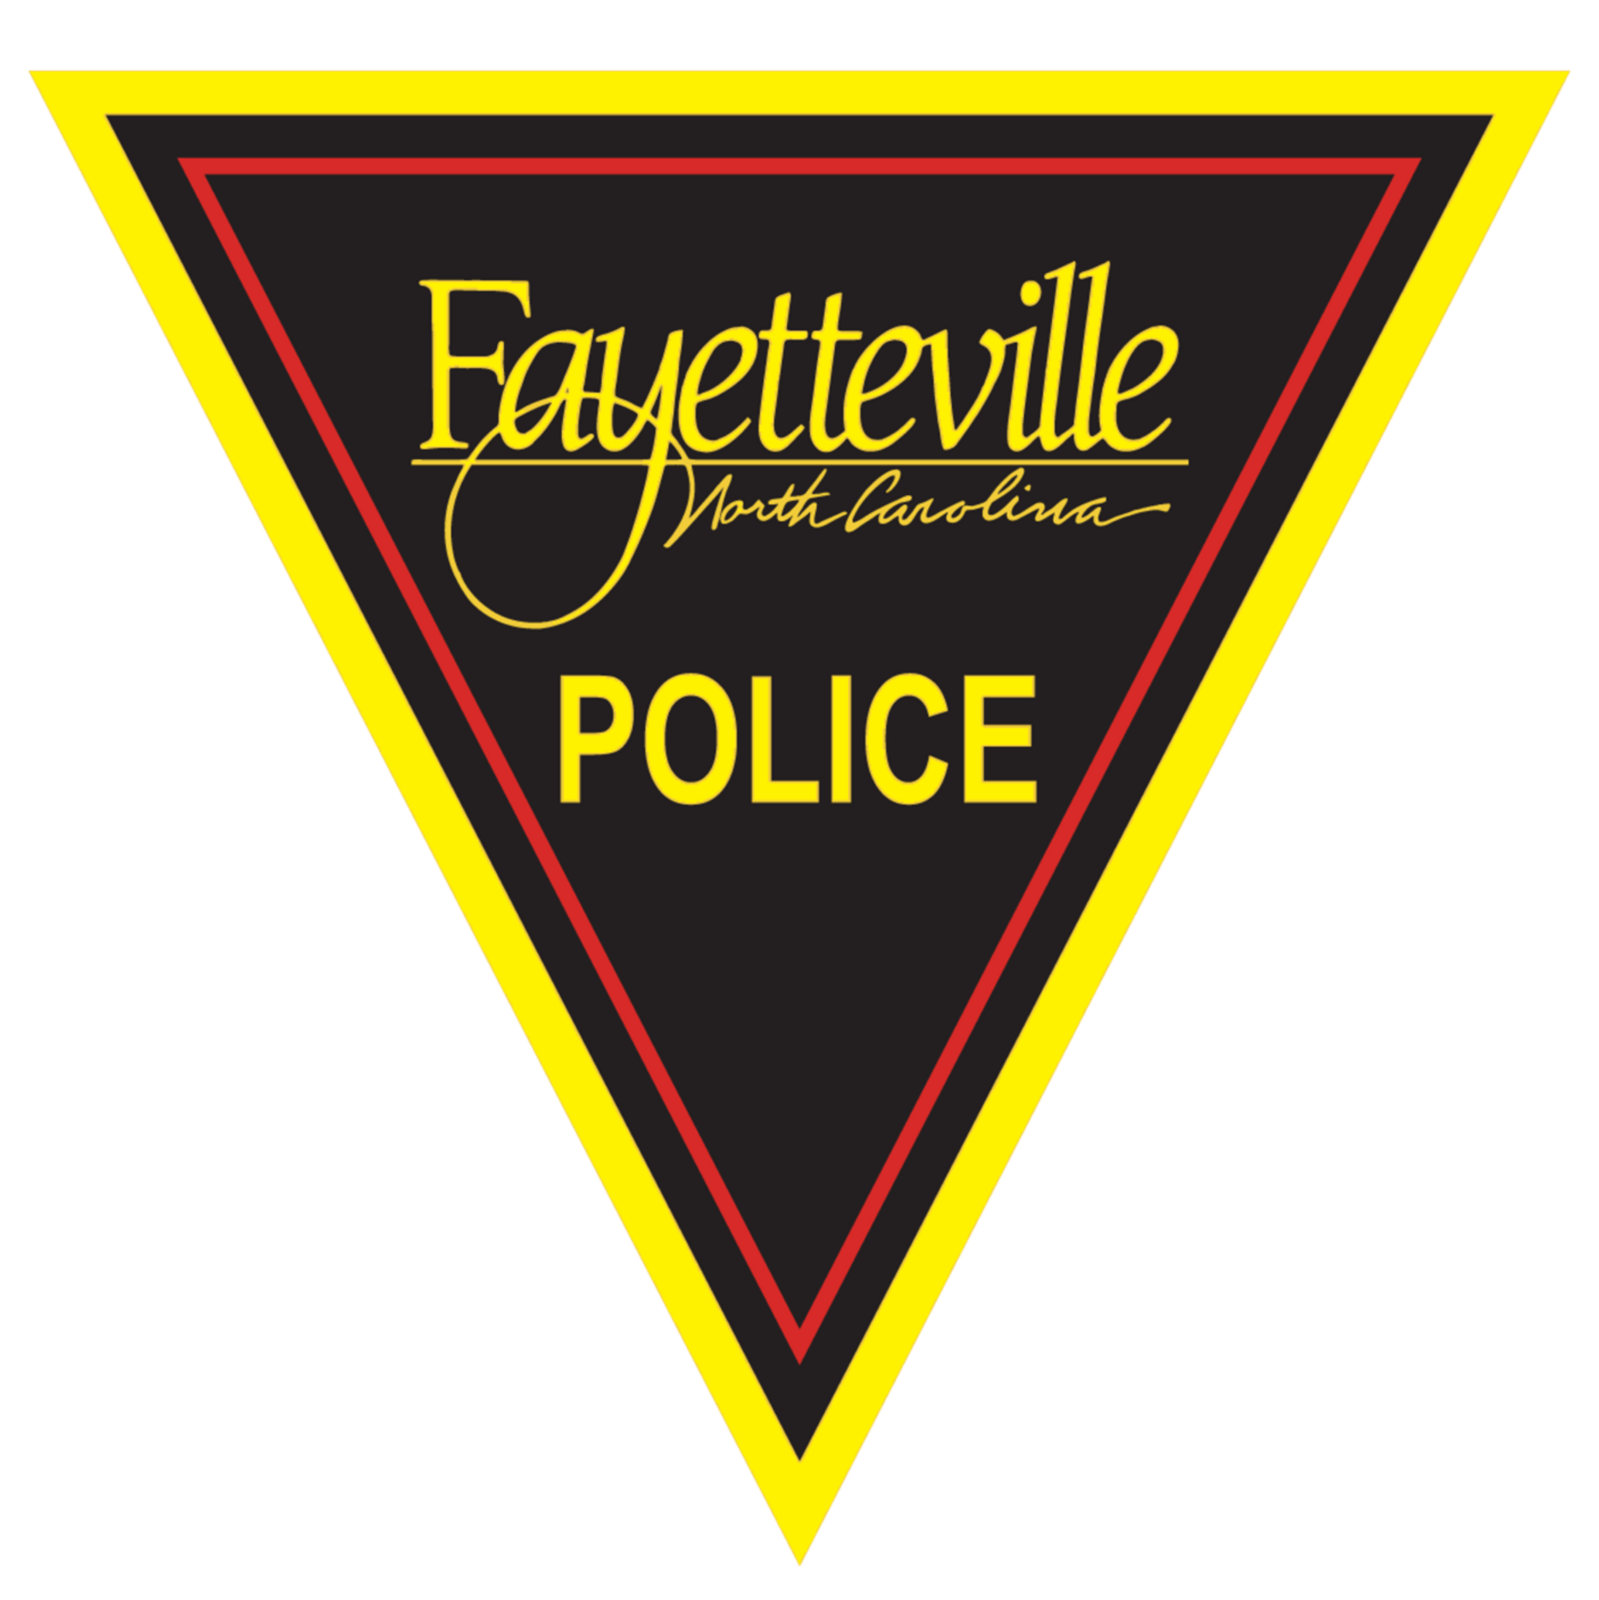 Fayetteville Police Department - 2350 Crime and Safety